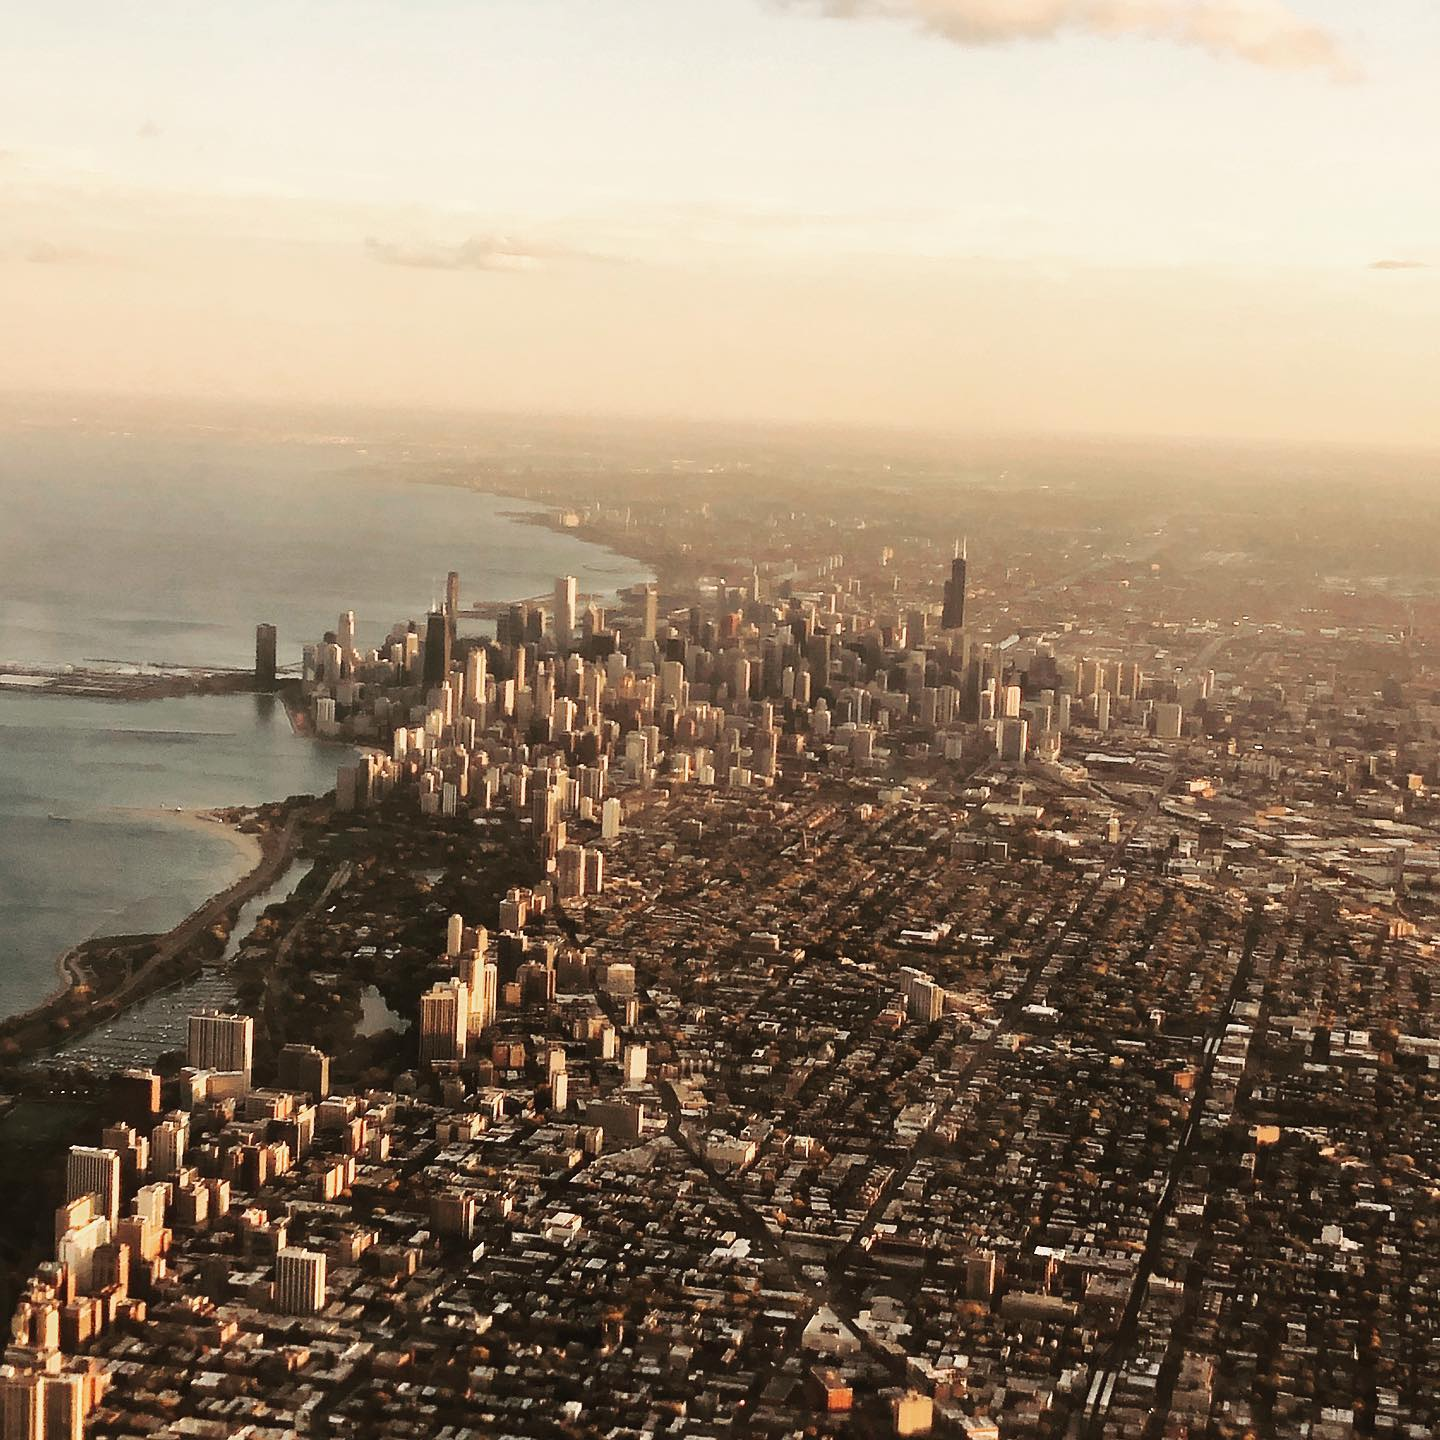 One of our evaluators took a great pic flying into Chicago ORD